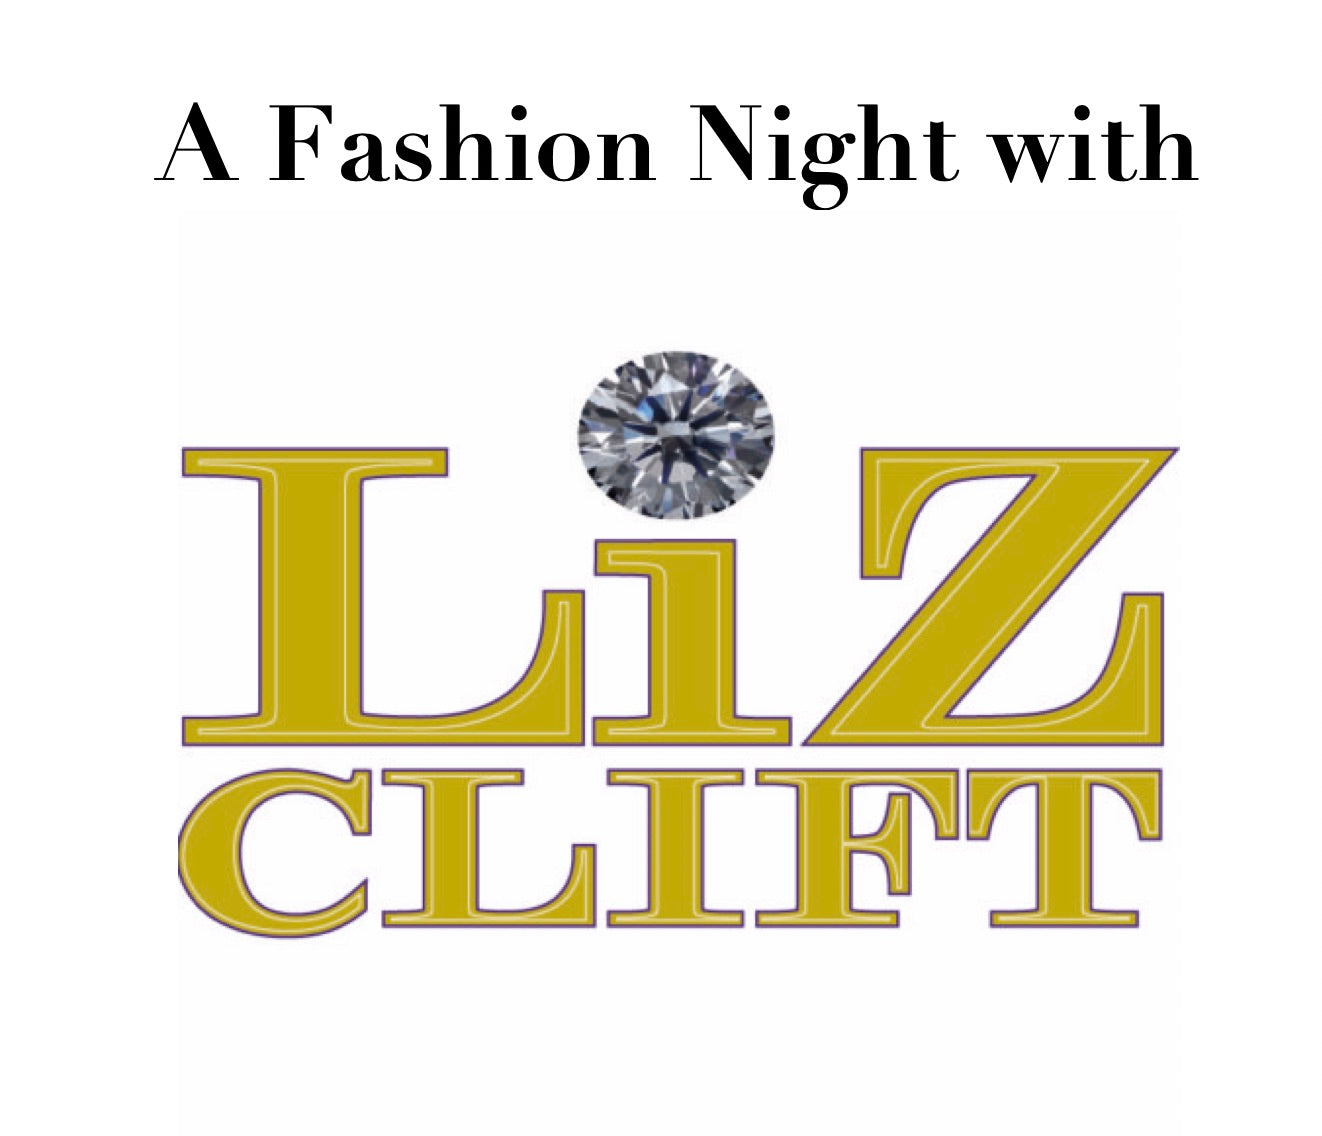 A Fashion Night with Liz Clift International